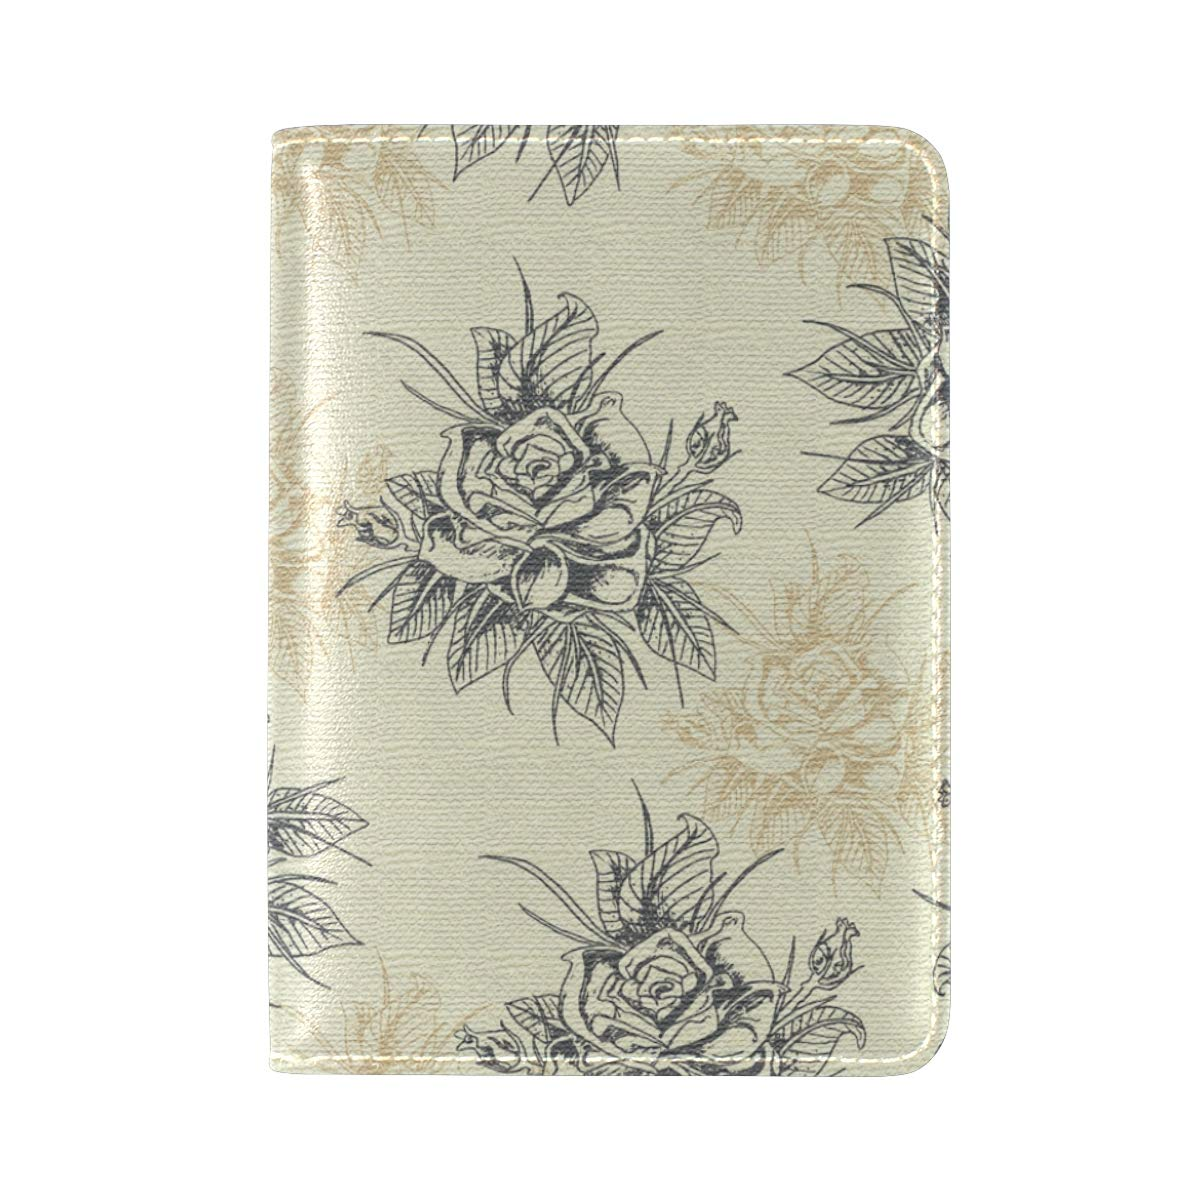 Seamless Pattern Vintage Hand Drawn Rose One Pocket Leather Passport Holder Cover Case Protector for Men Women Travel